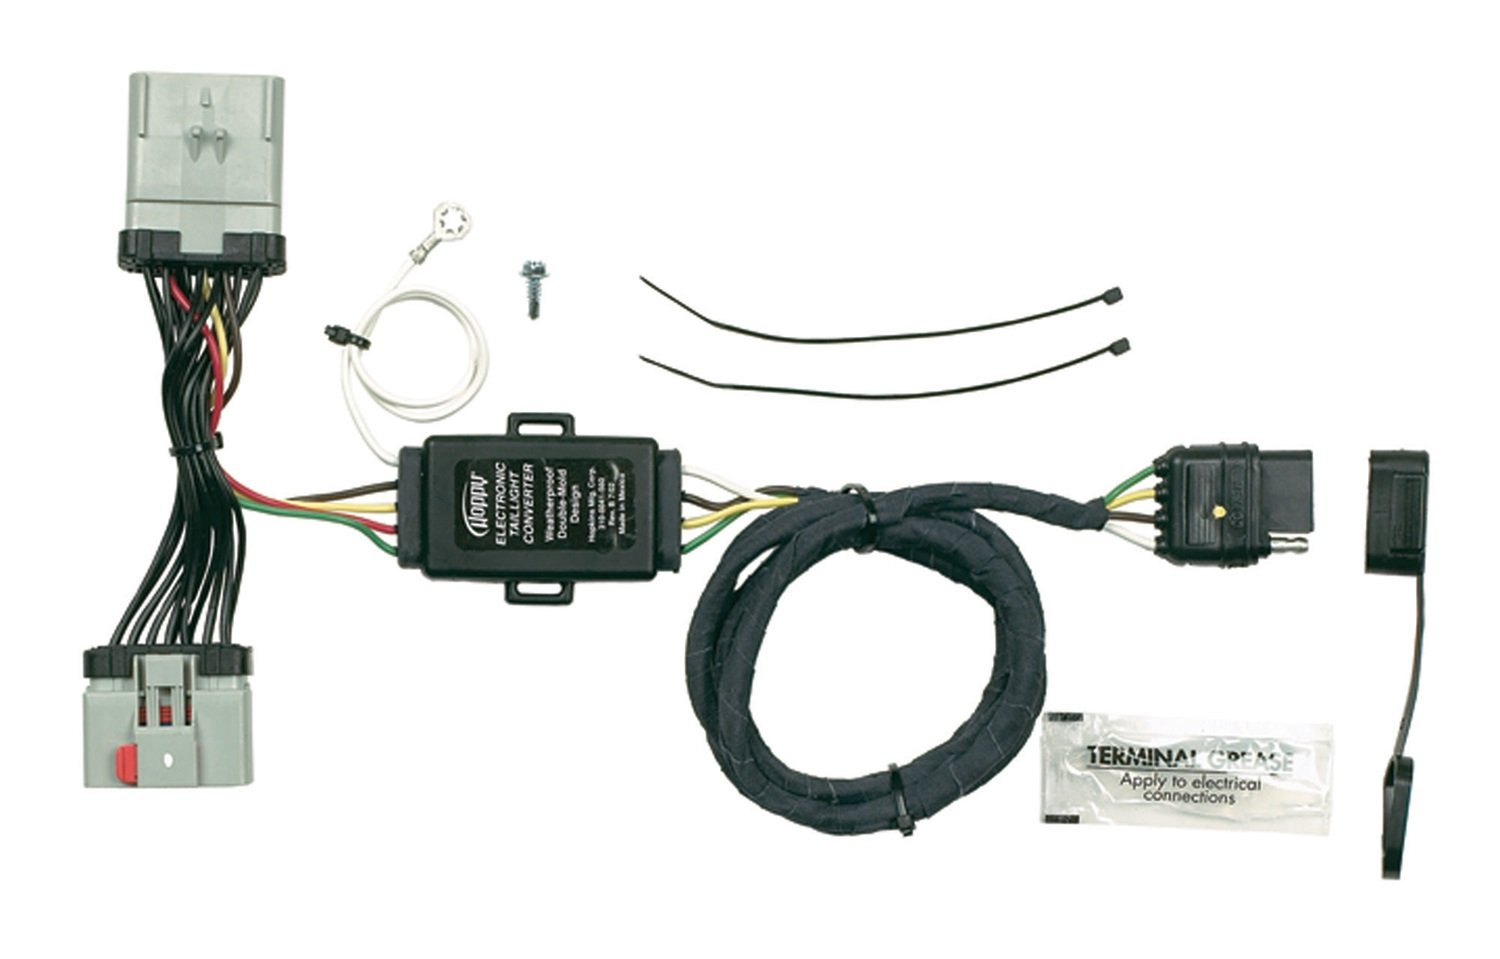 61a1DM22CCL._SL1500_ amazon com hopkins 42475 plug in simple vehicle wiring kit 2002 Jeep Liberty Cold Air Intake at mifinder.co